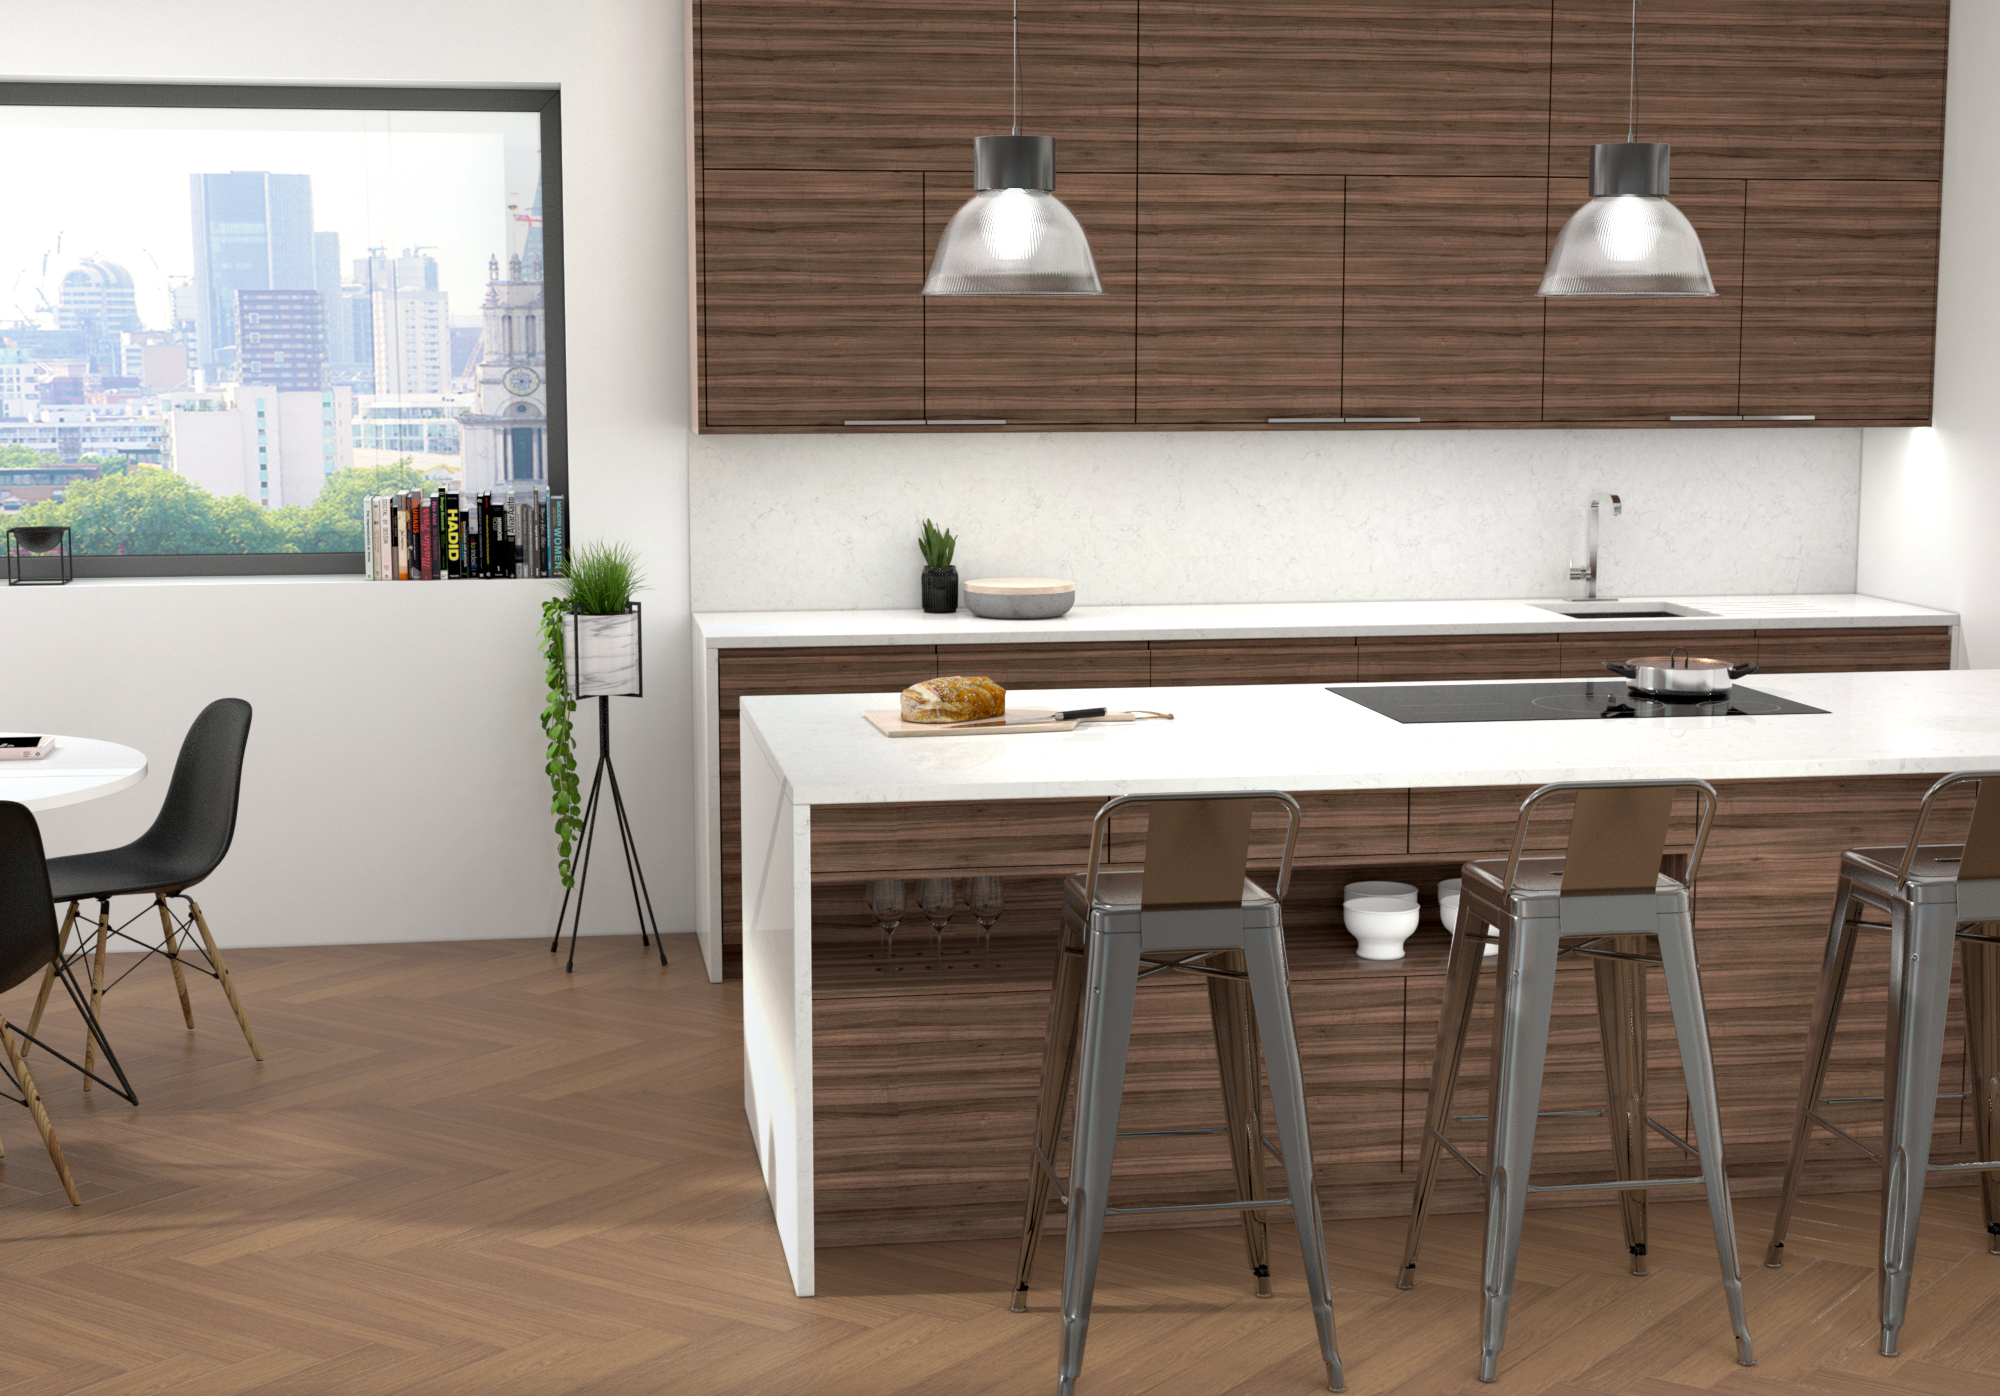 Creating The Kitchen Wow Factor With Quartz Worktops